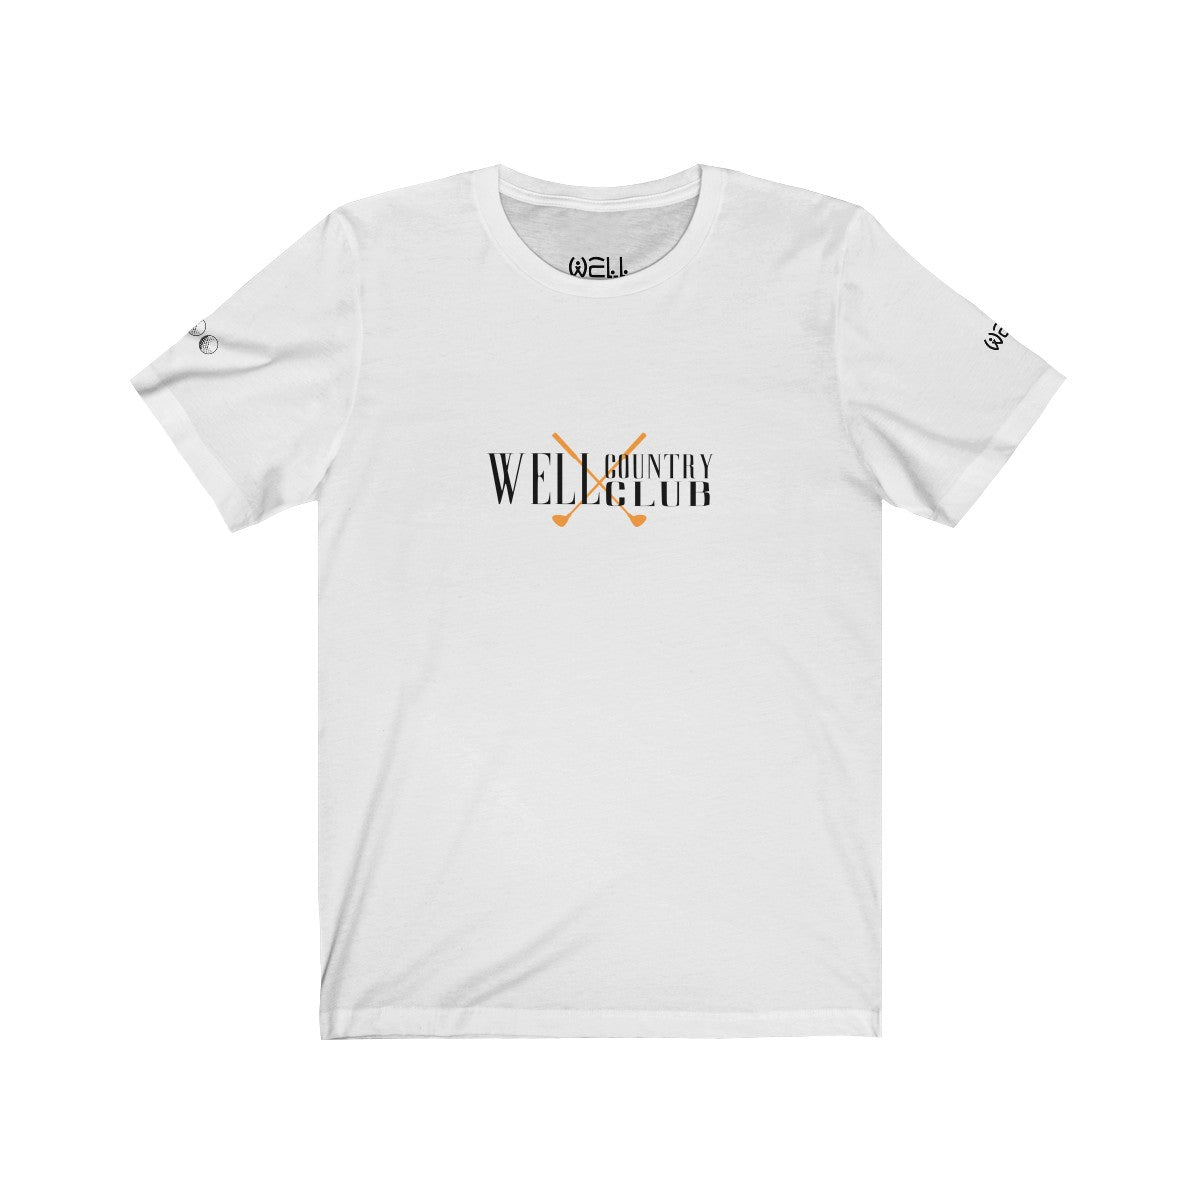 Well Country Club Tee